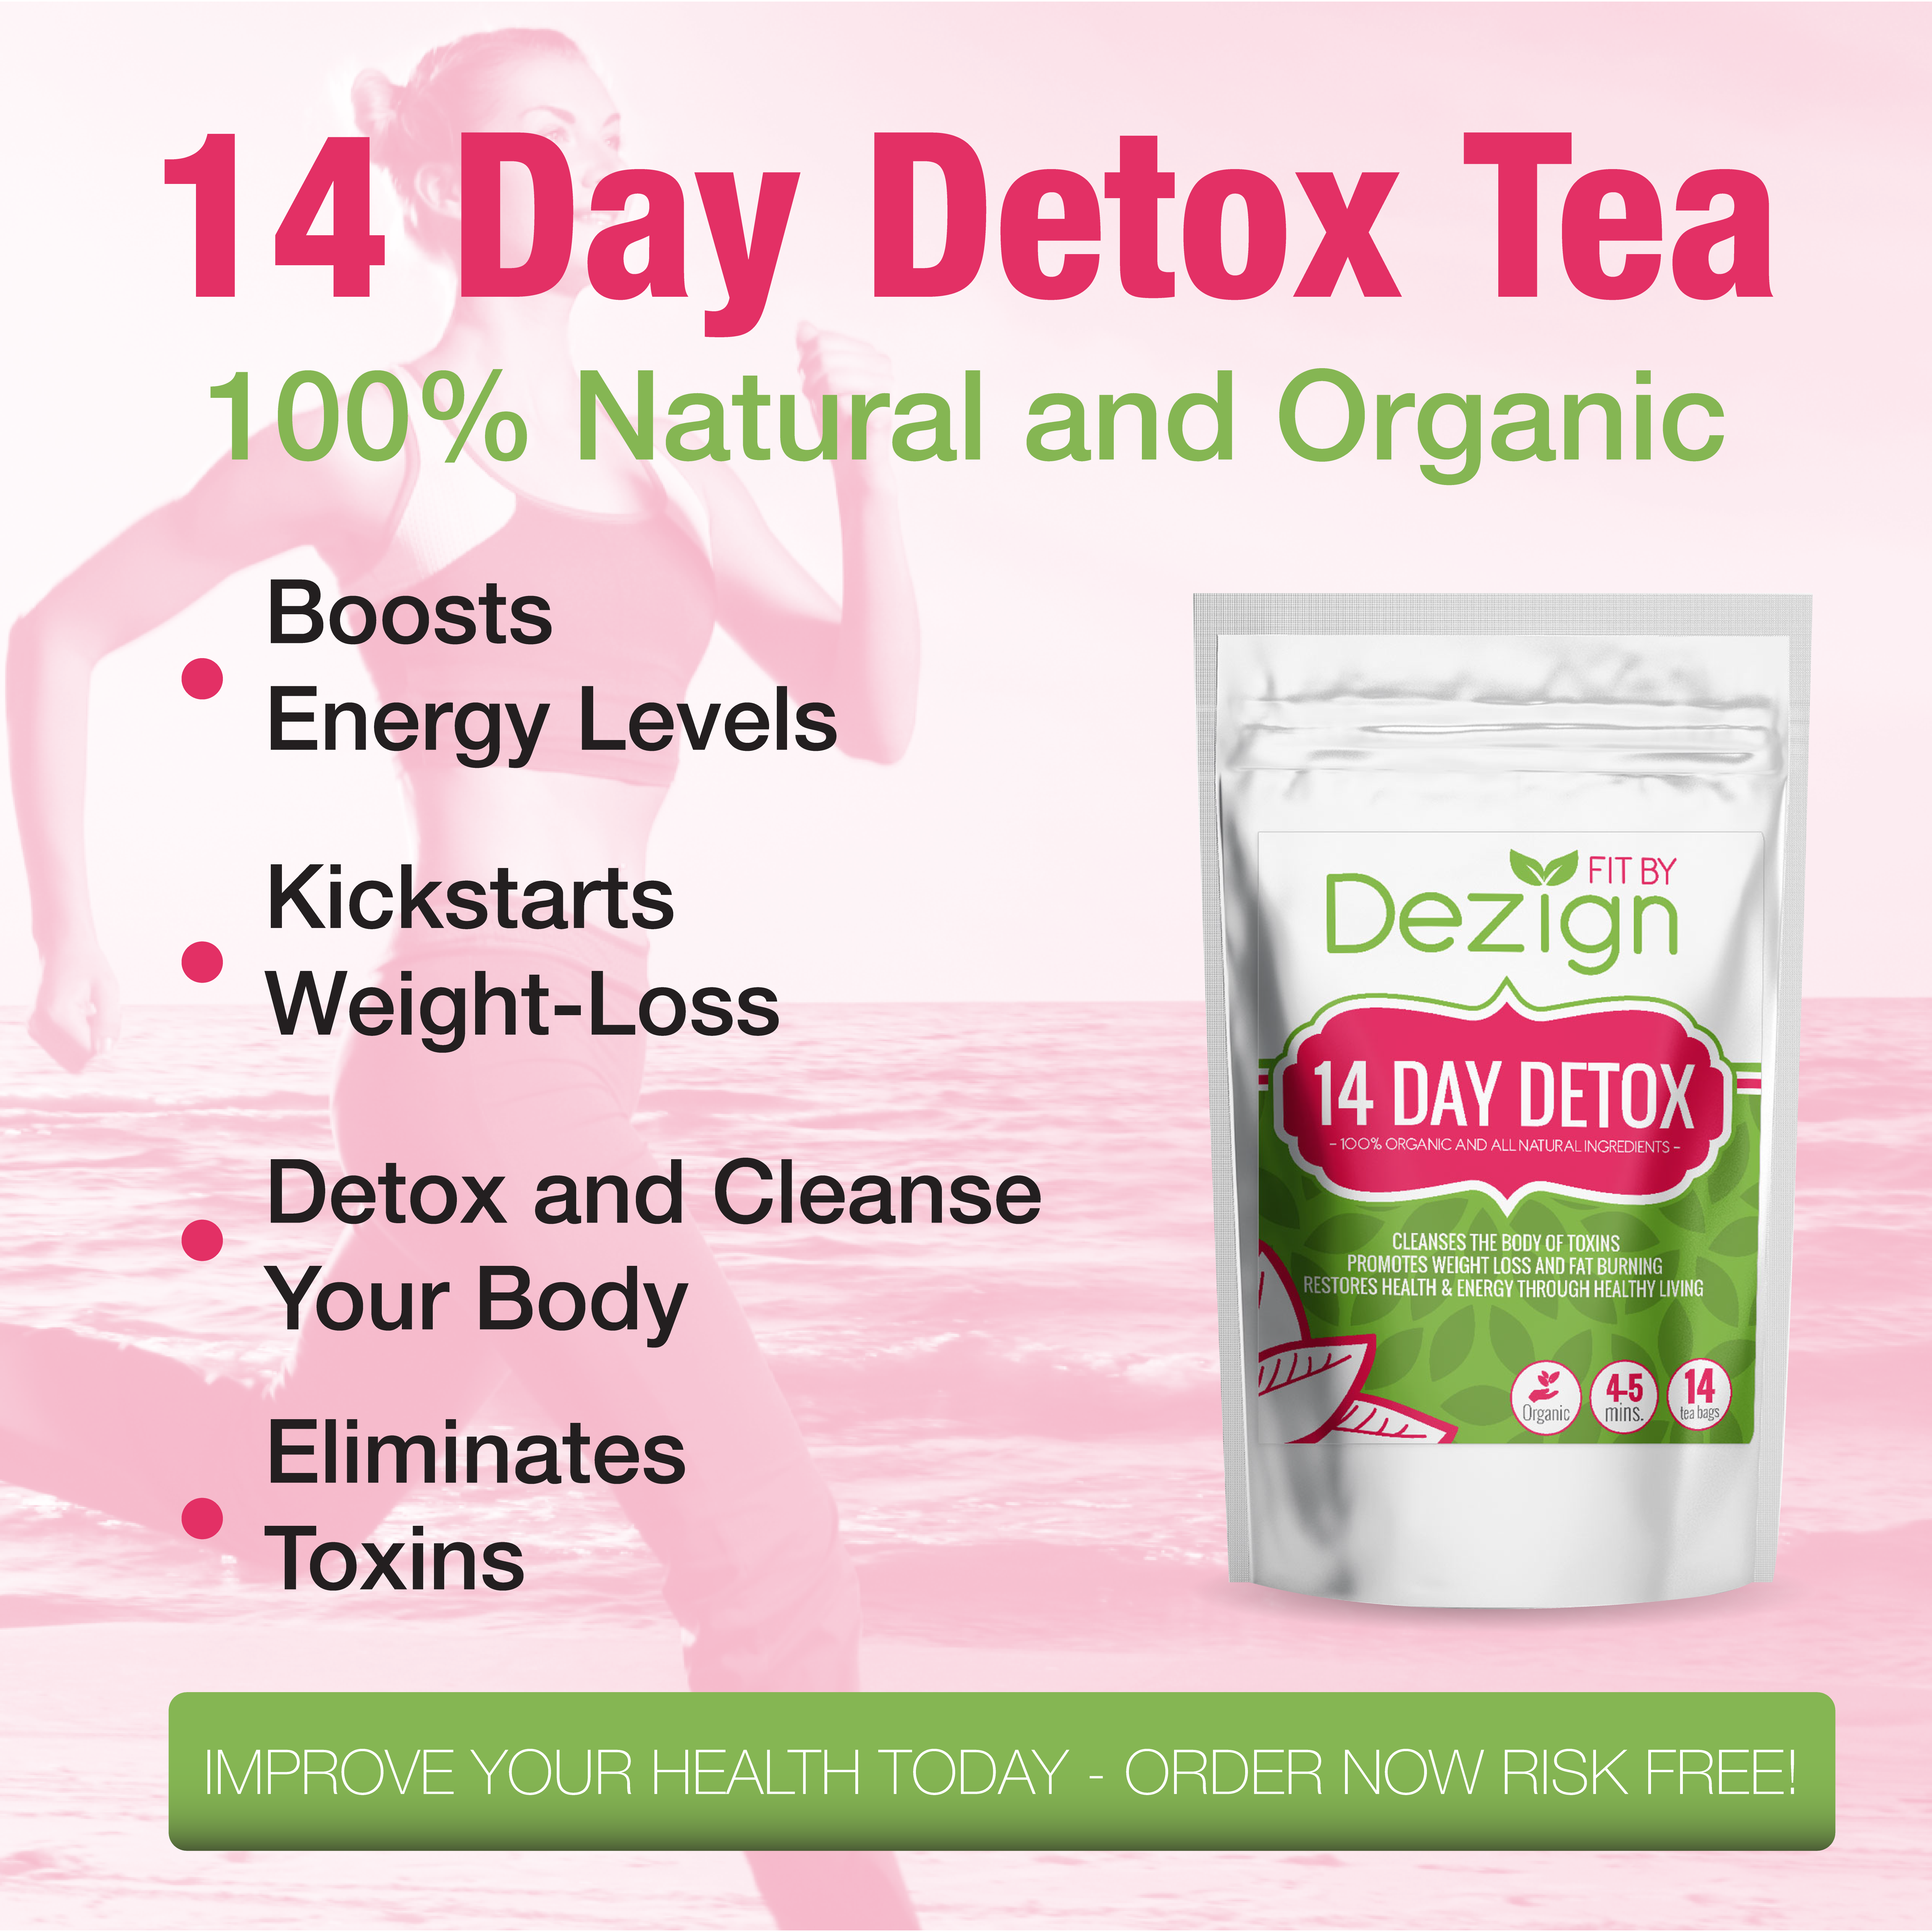 14 Day Detox Tea by Fit by Dezign